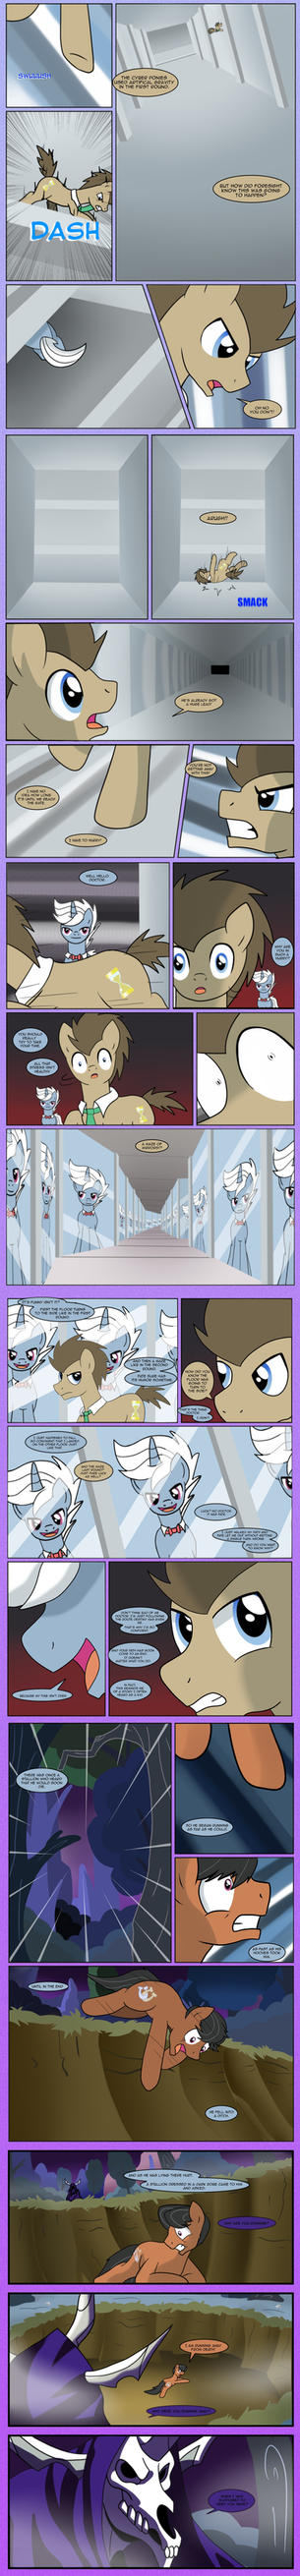 Doctor Whooves - End Game Pt 3 by Edowaado